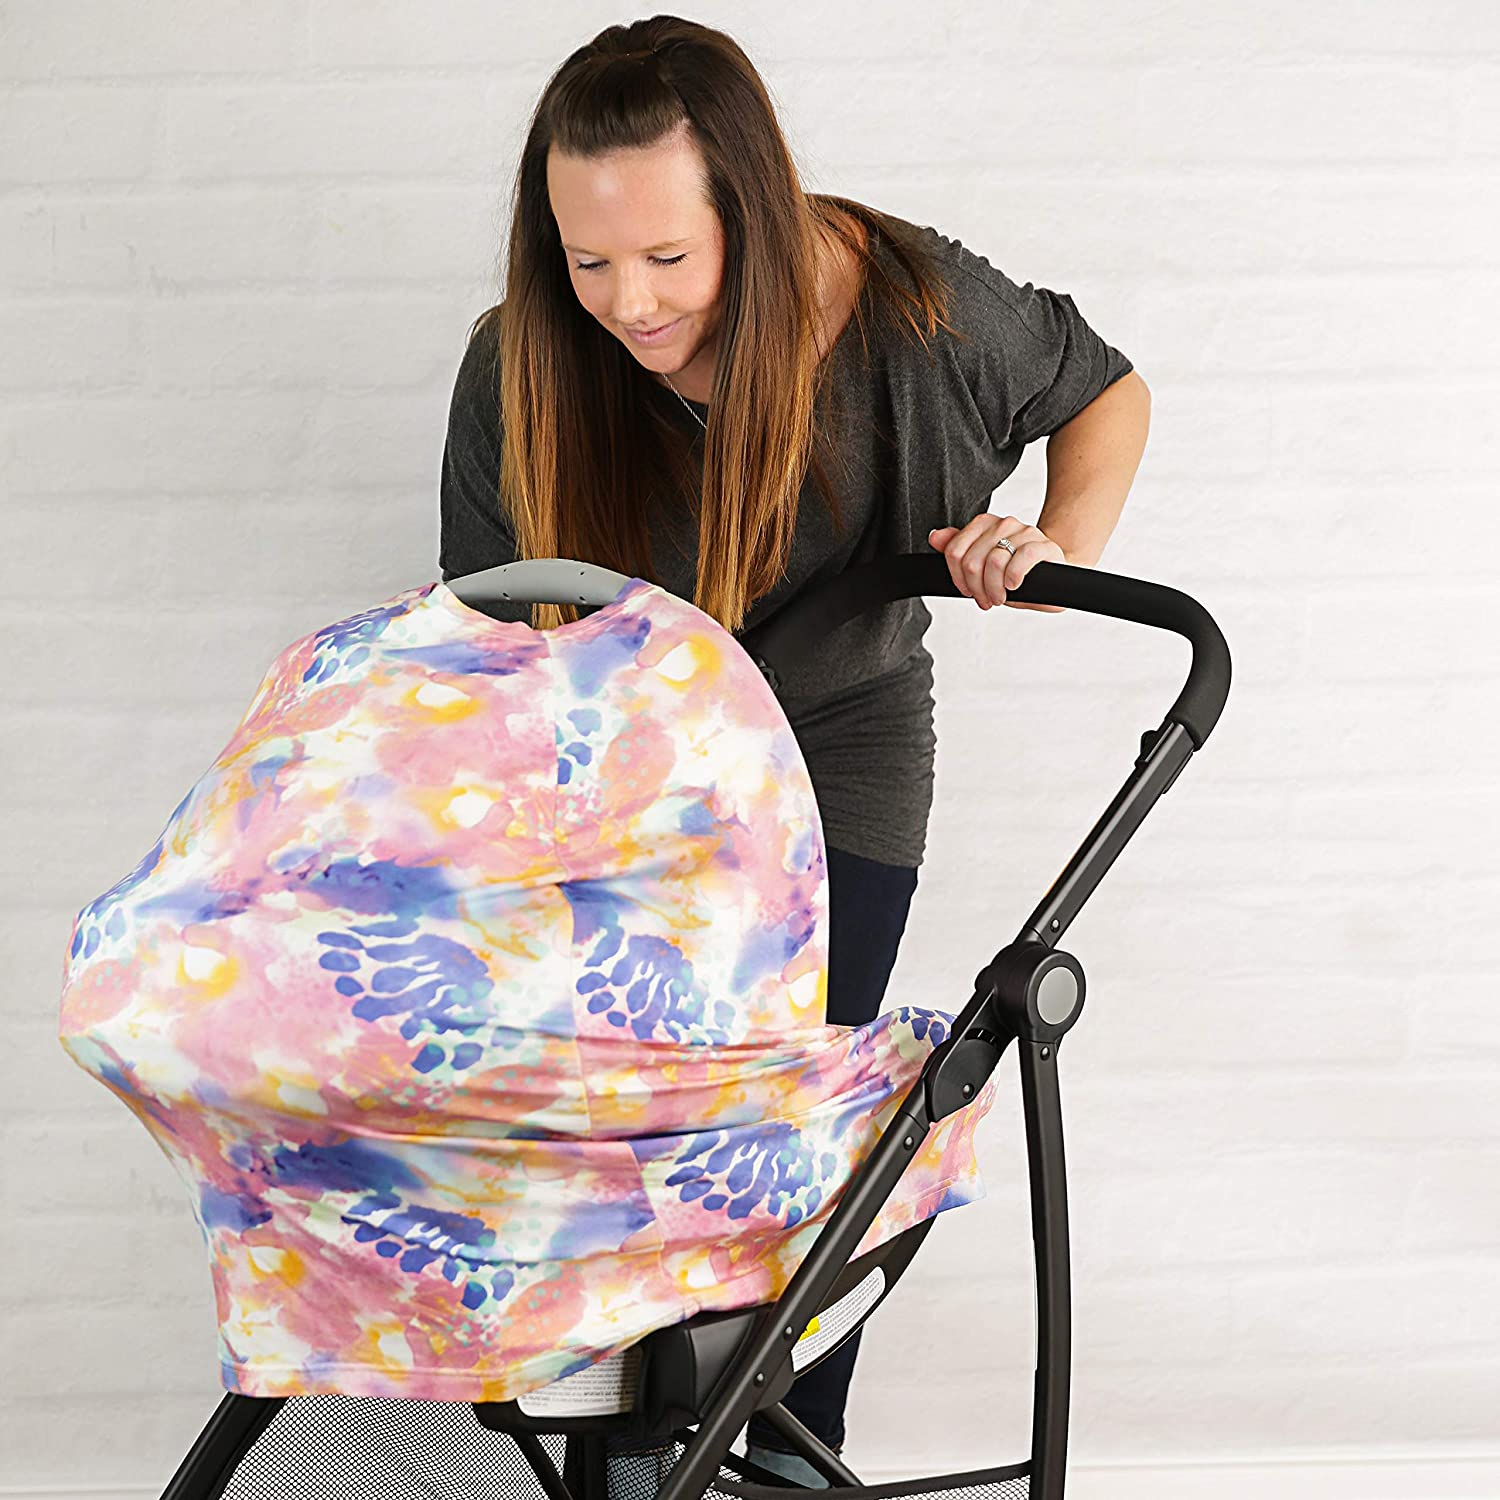 Car Seat Canopy Stroller and Carseat Covers for Girls- Best Stretchy Infinity Scarf and Shawl- Multi Use Breastfeeding Cover Up- Fleur Print Nursing Cover Shopping Cart High Chair